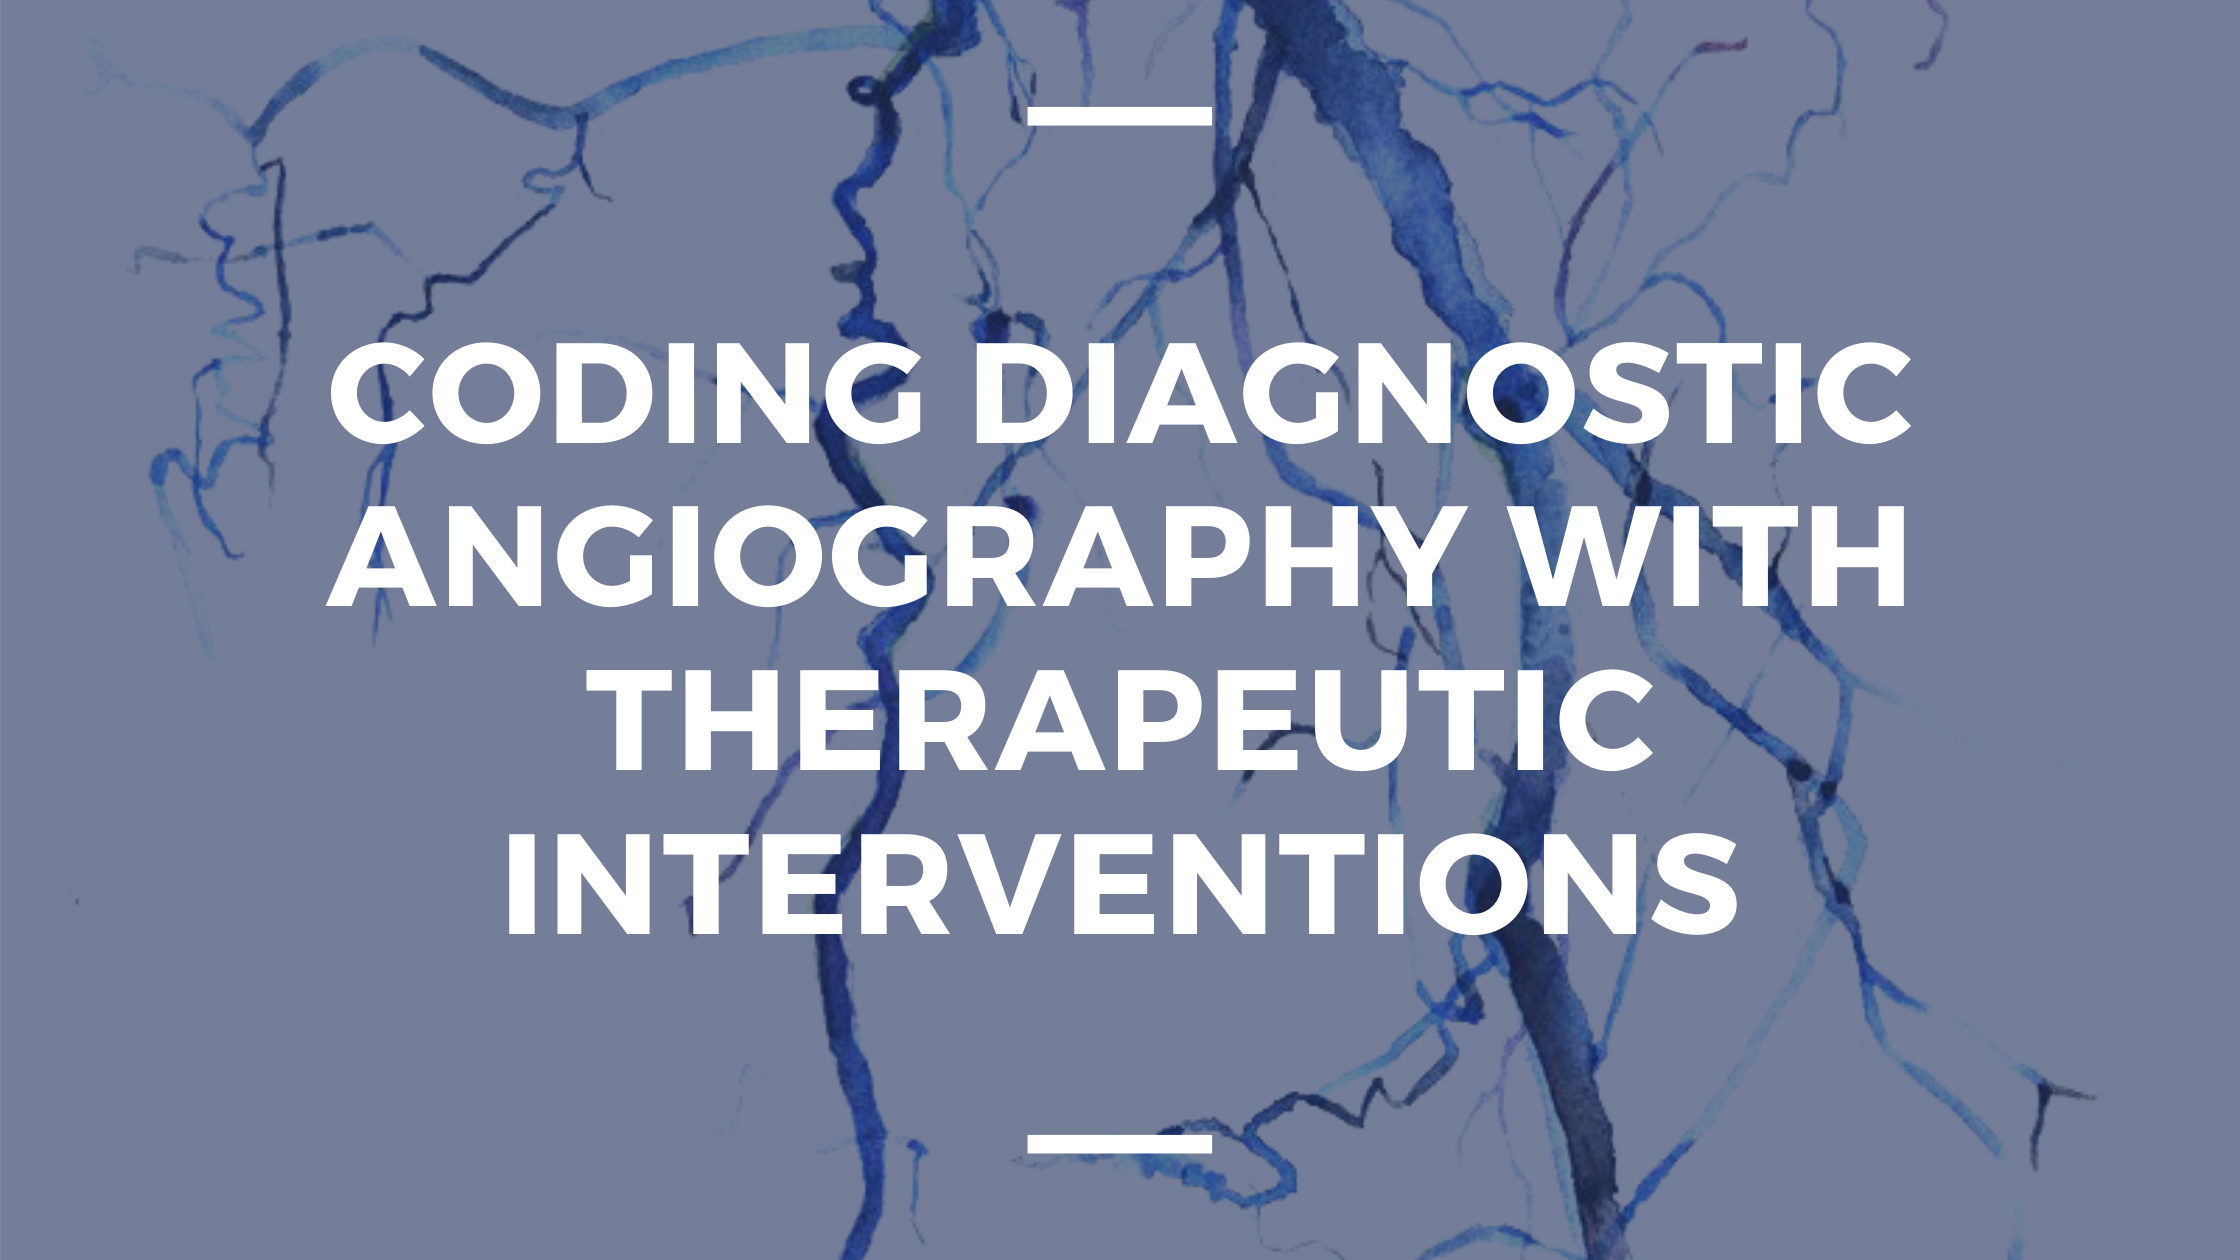 Diagnostic Angiography with Therapeutic Interventions